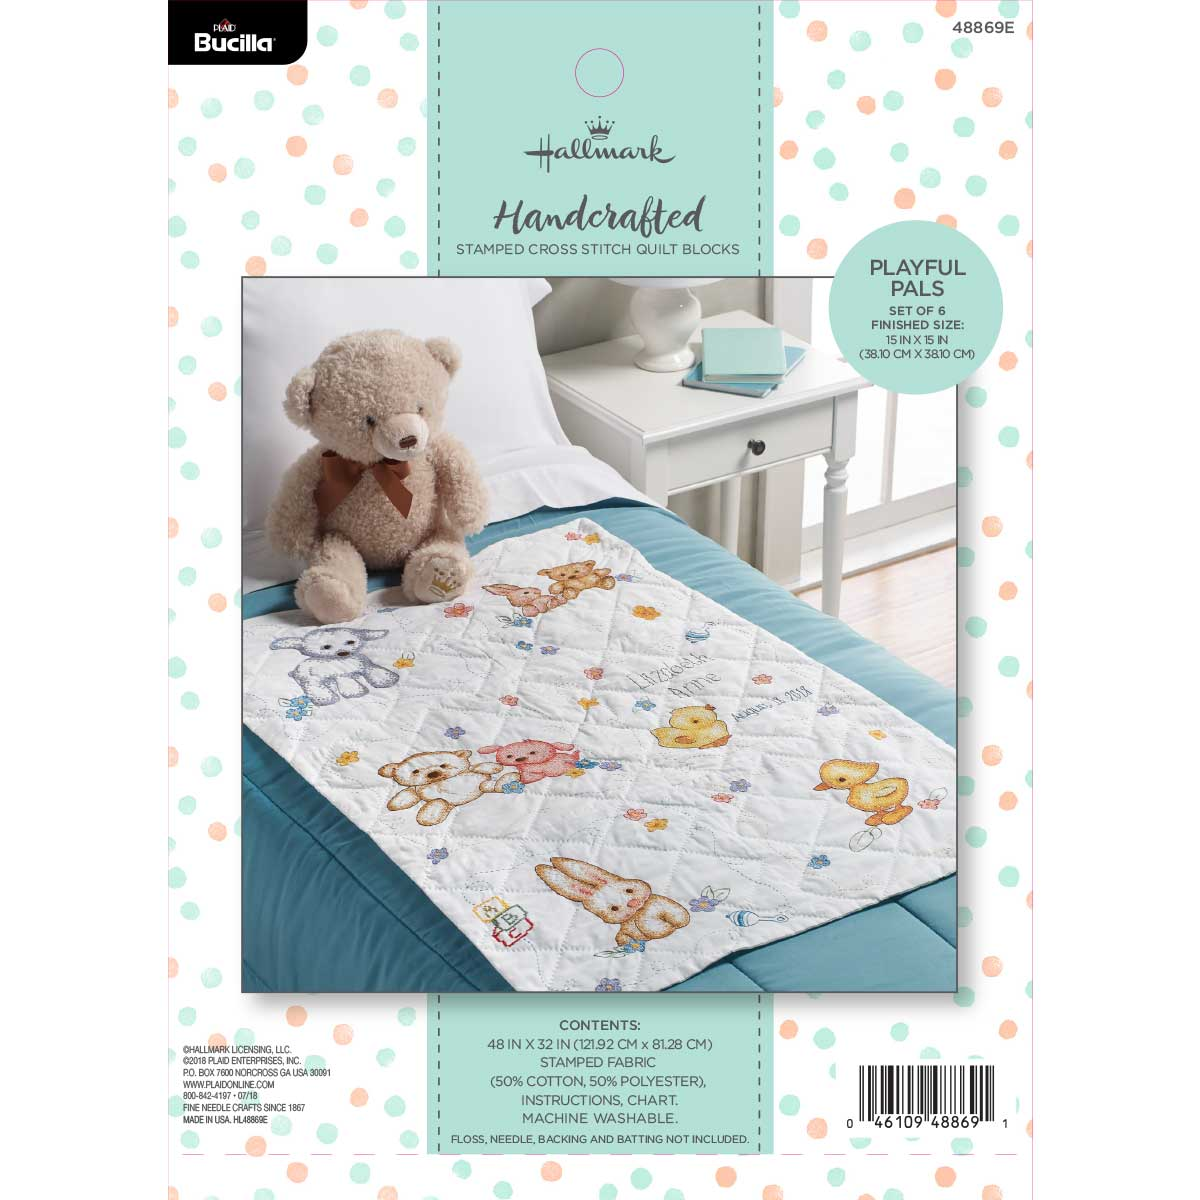 Bucilla ® Baby - Stamped Cross Stitch - Crib Ensembles - Hallmark - Playful Pals - Quilt Blocks